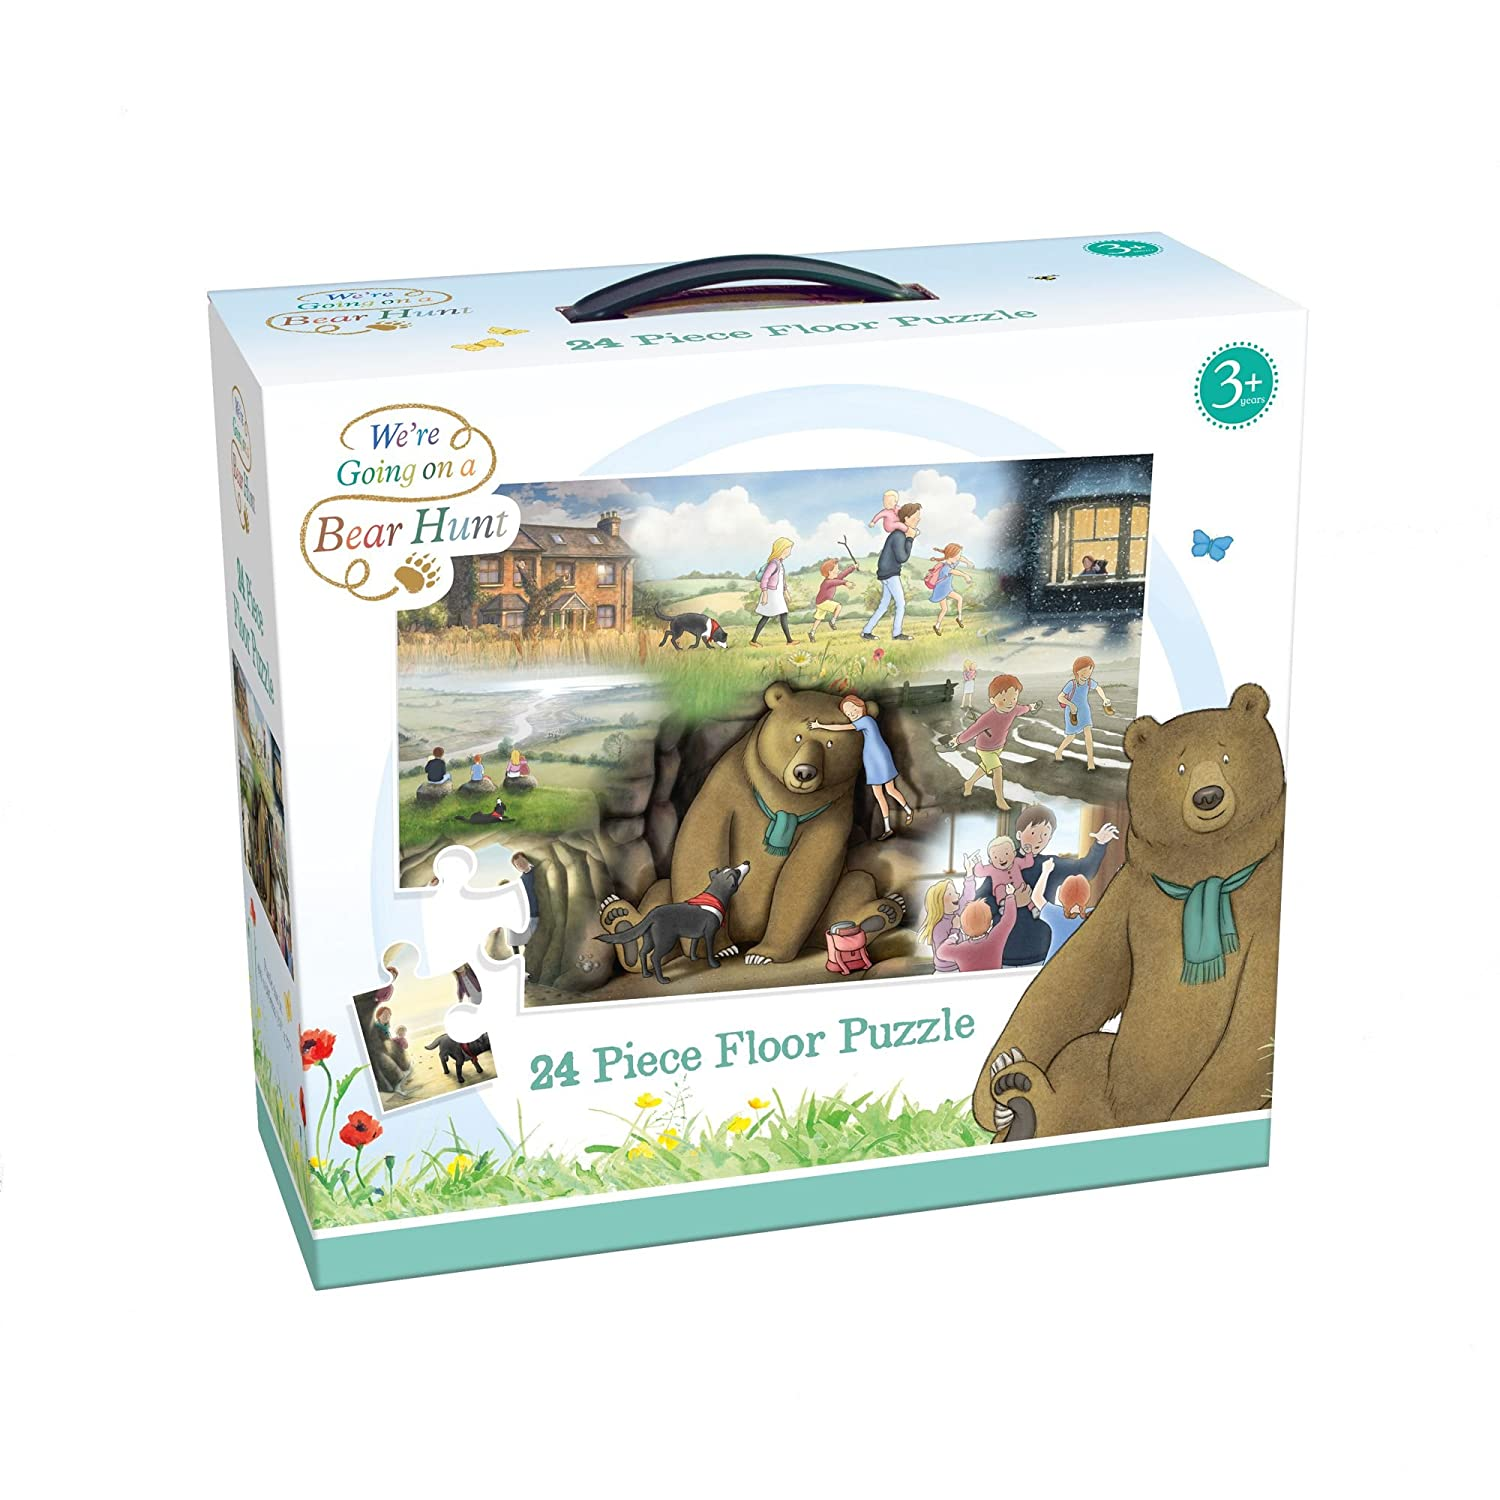 4 in 1 Jigsaw Puzzle Paul Lamond Games We Are Going on a Bear Hunt